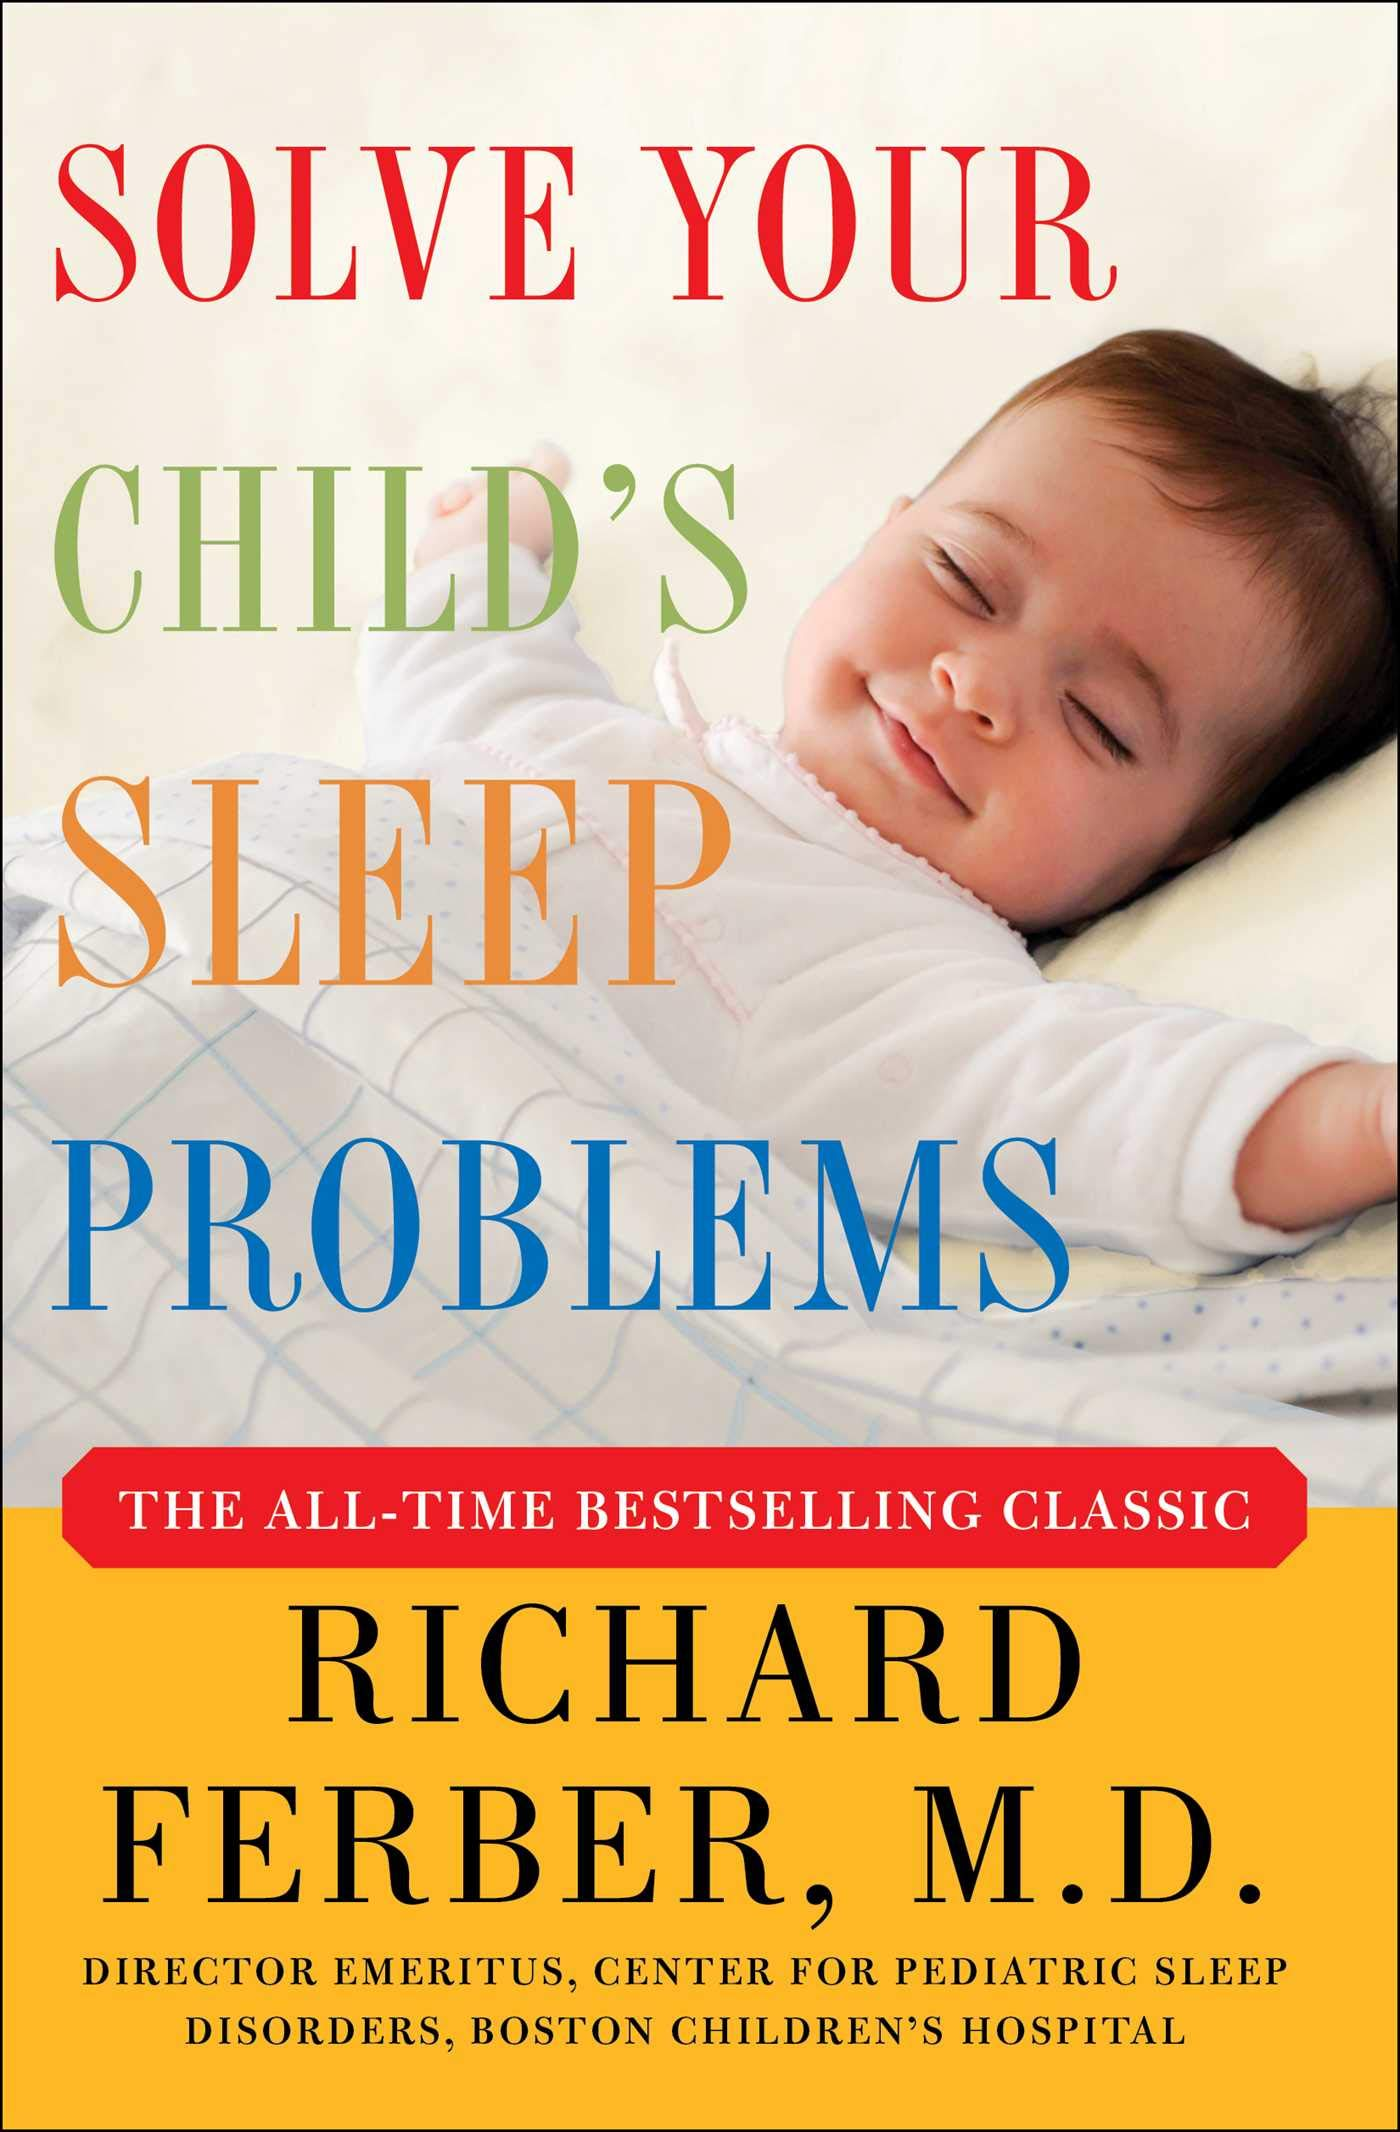 Childrens Sleep Problems Linked To >> Solve Your Child S Sleep Problems New Revised And Expanded